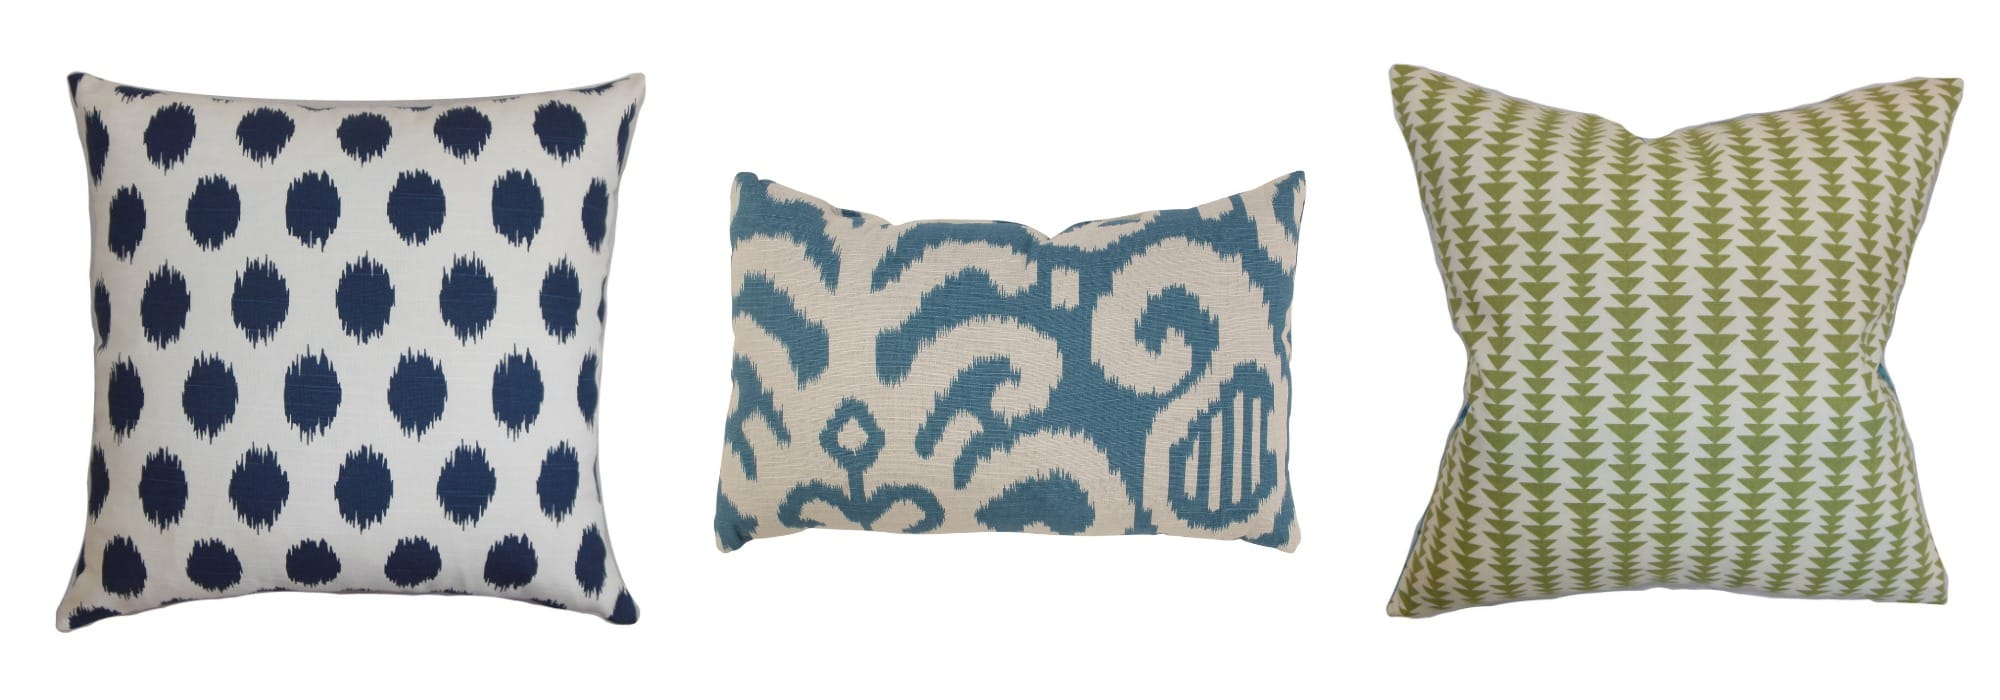 3 Ways To Mix And Match Throw Pillows Abby Lawson